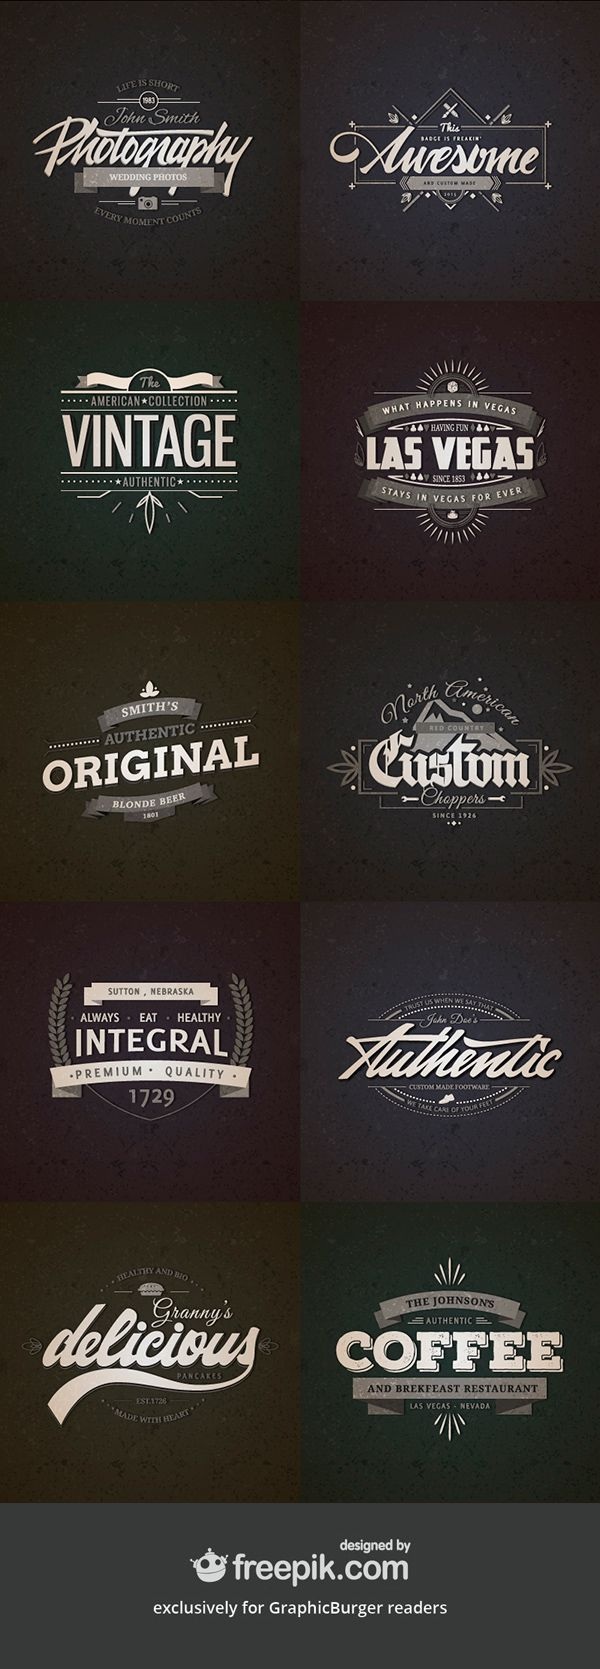 I'm happy to share with you this premium quality collection of 10 retro vintage badges created by freepik exclusively...